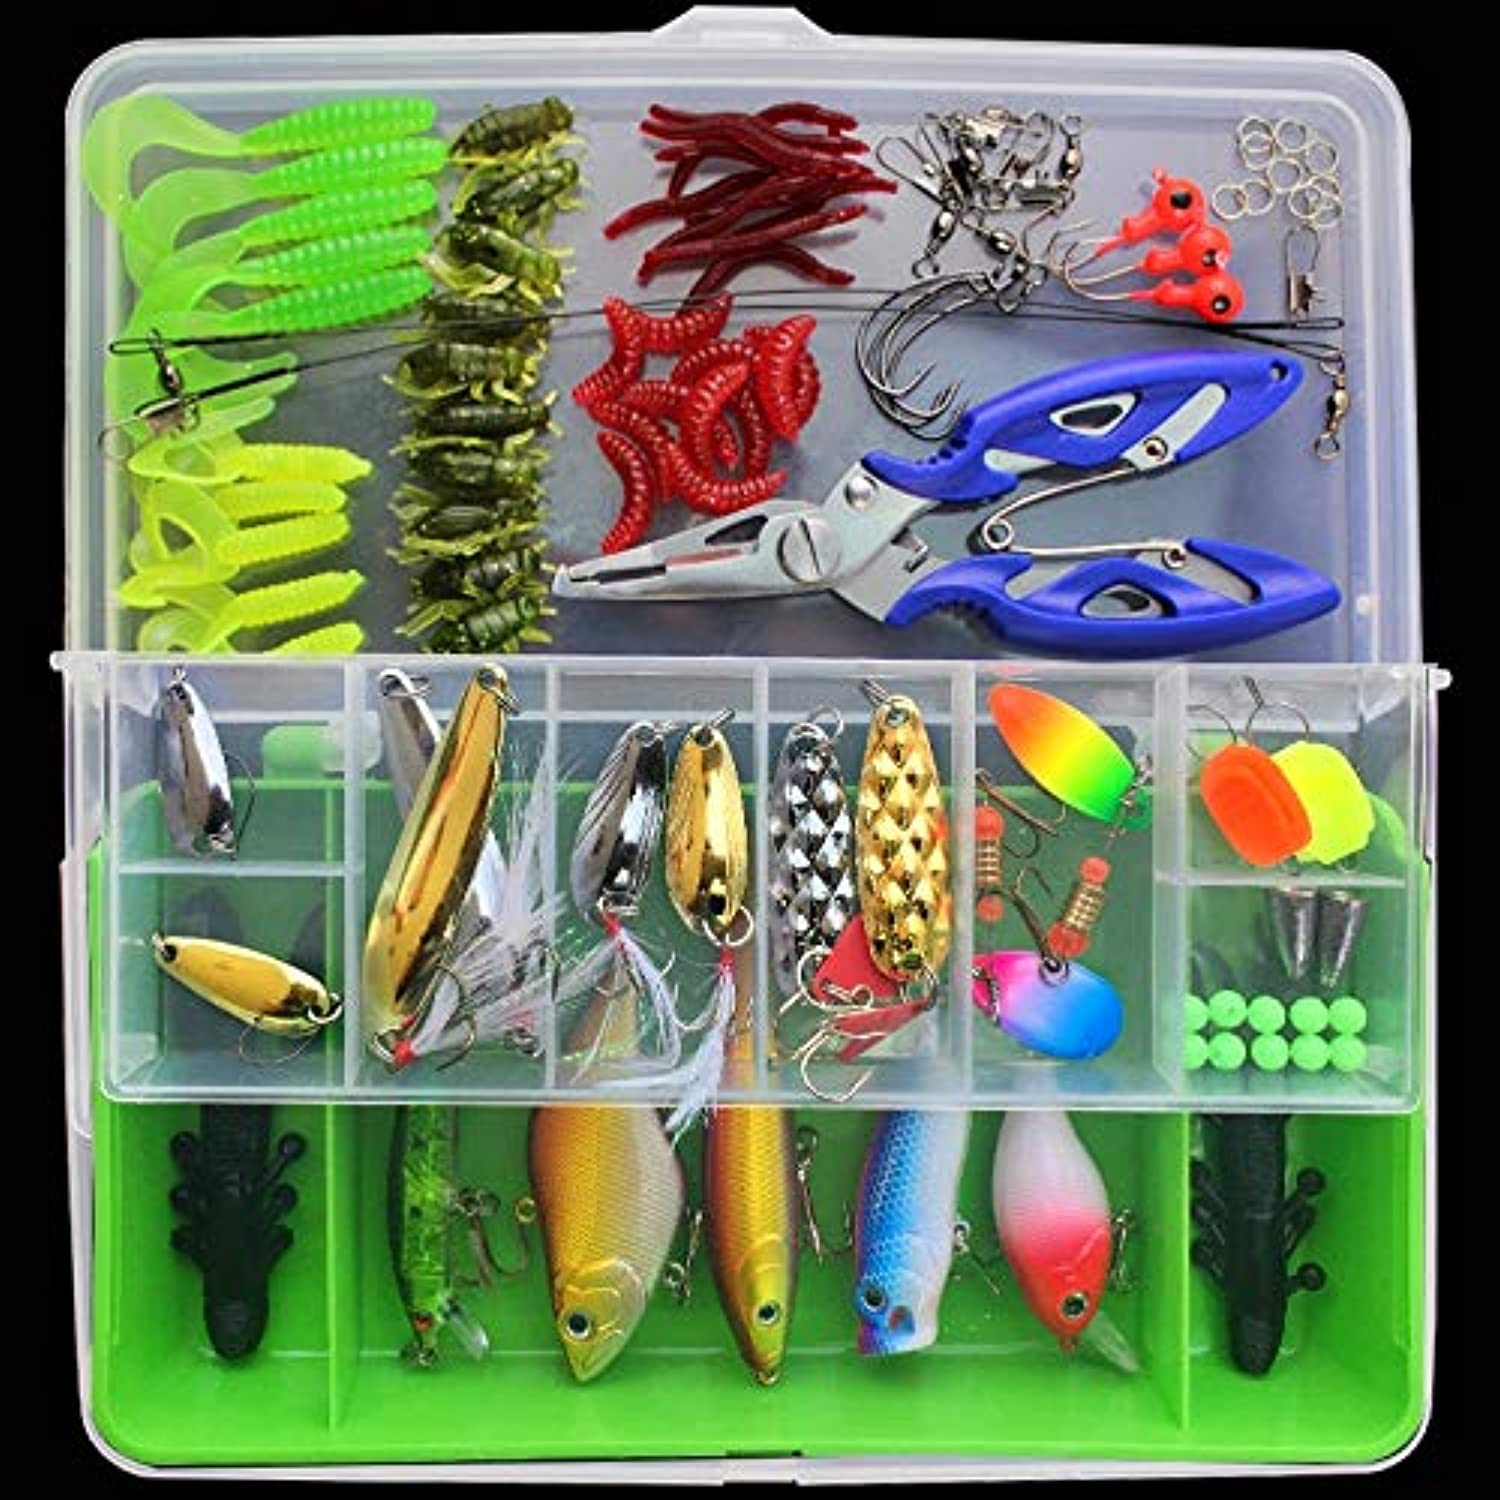 Ouyingmatealliance Outdoor&Sports Fishing Outdoor&Sports Fishing 101 PCS Fishing Bait Lure Kit Fishing Tackle (Green)